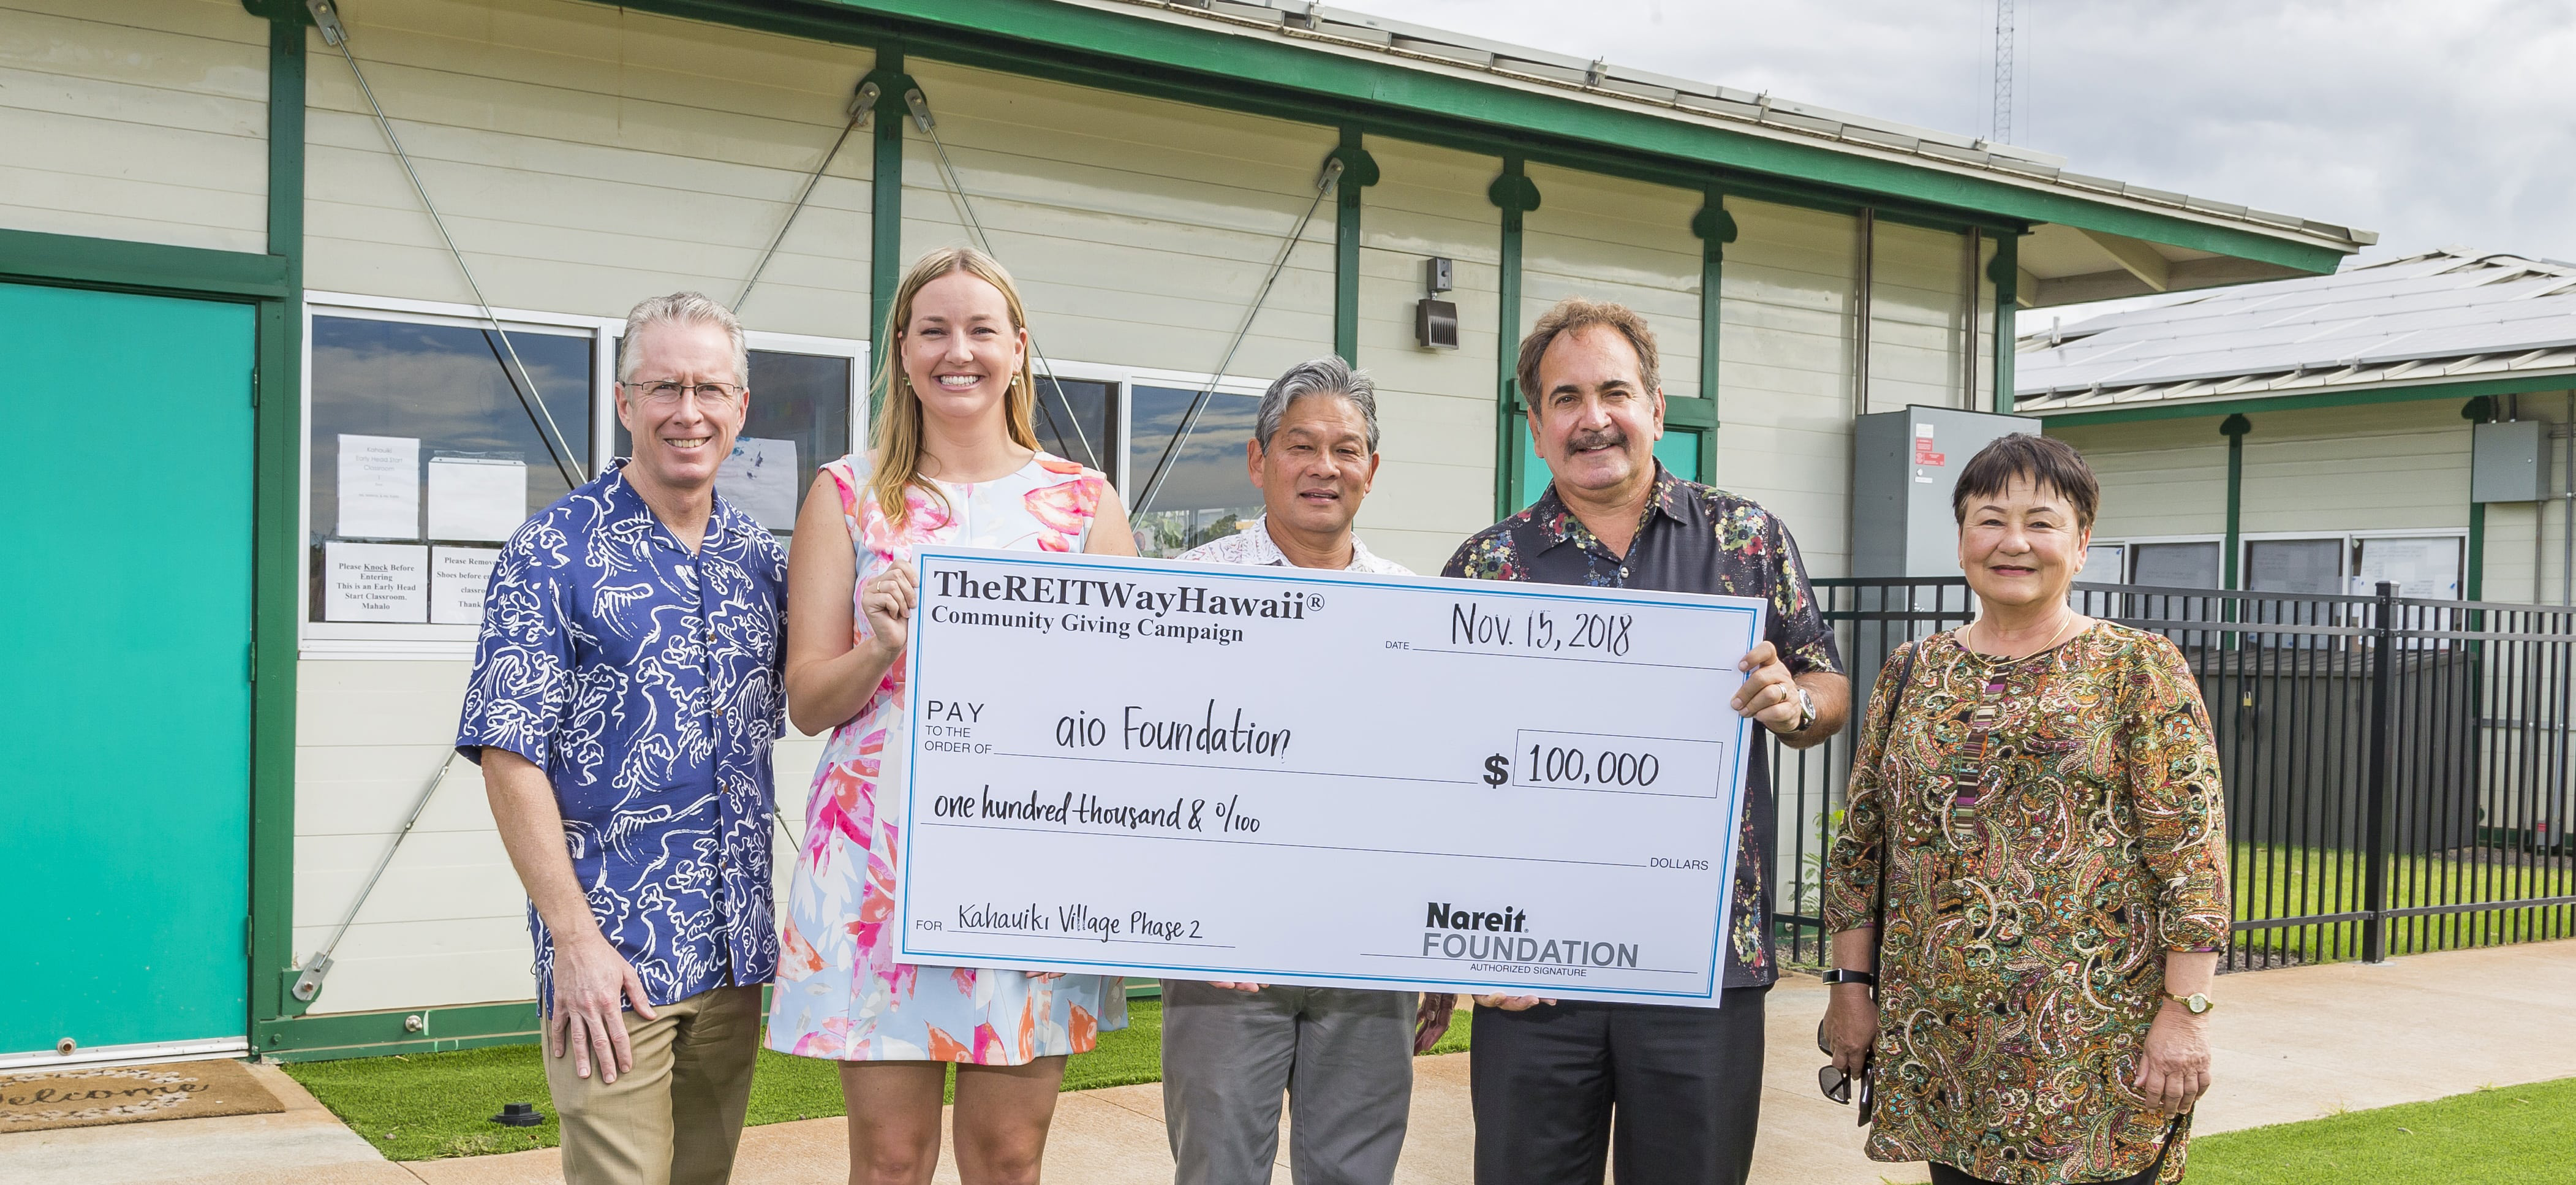 The REIT Way Hawaii Community Giving Camapaign Check presentation